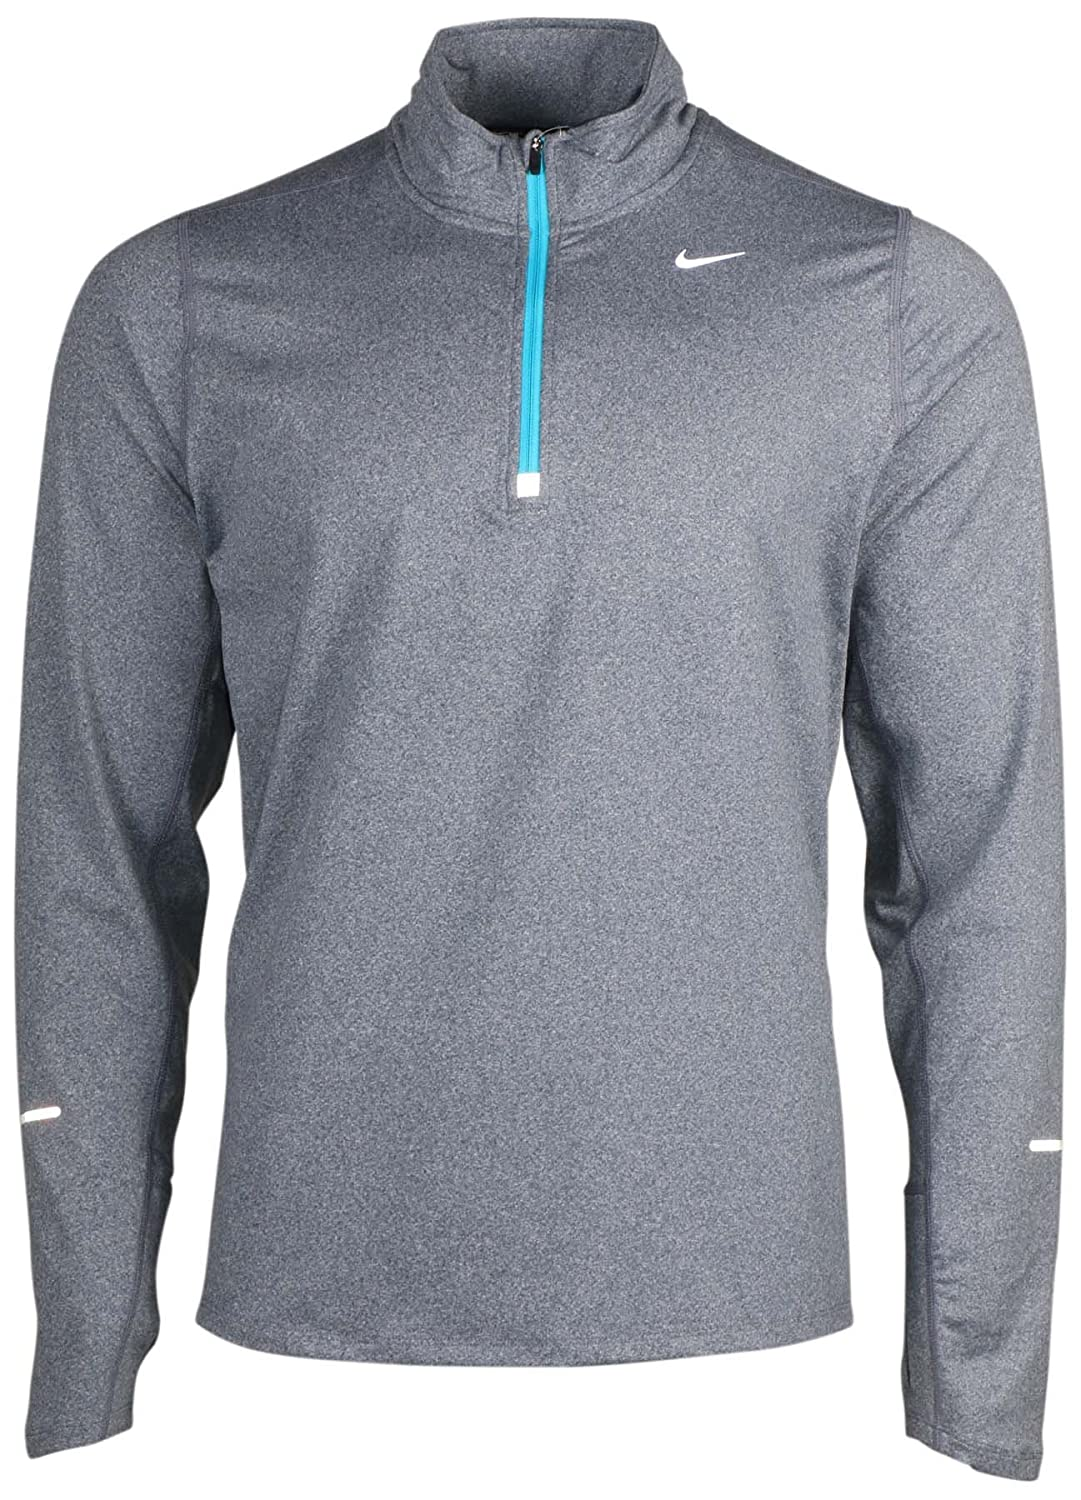 NIKE Men's Dry Element Running Top B0098RBWCG Large|Silver/Heather/Gamma Blue